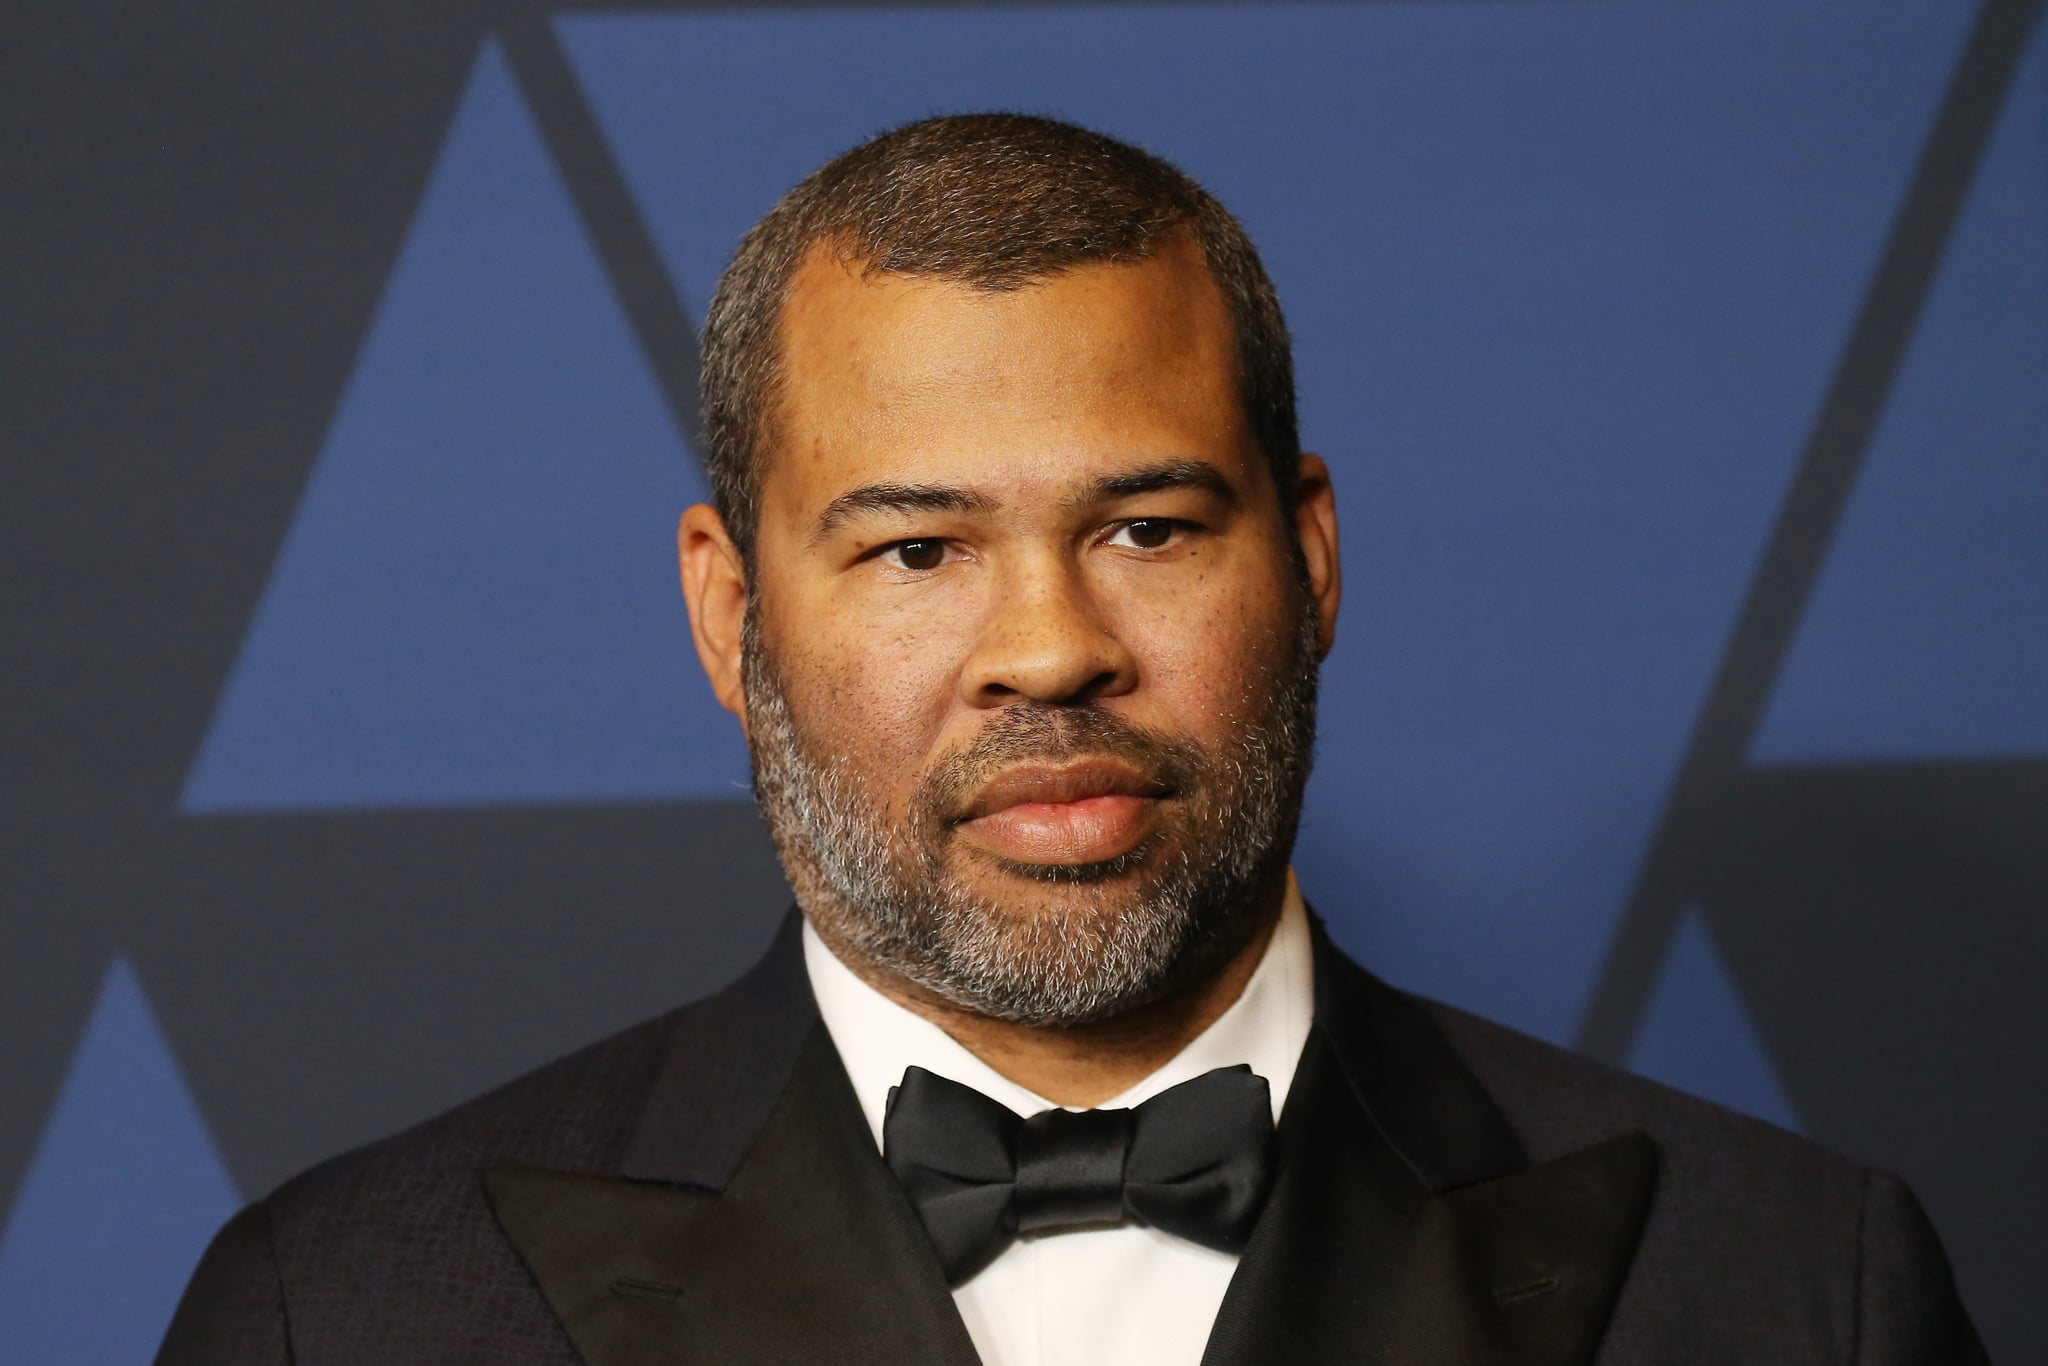 HOLLYWOOD, CALIFORNIA - OCTOBER 27: Jordan Peele arrives to the Academy of Motion Picture Arts and Sciences' 11th Annual Governors Awards held at The Ray Dolby Ballroom at Hollywood & Highland Center on October 27, 2019 in Hollywood, California. (Photo by Michael Tran/FilmMagic)